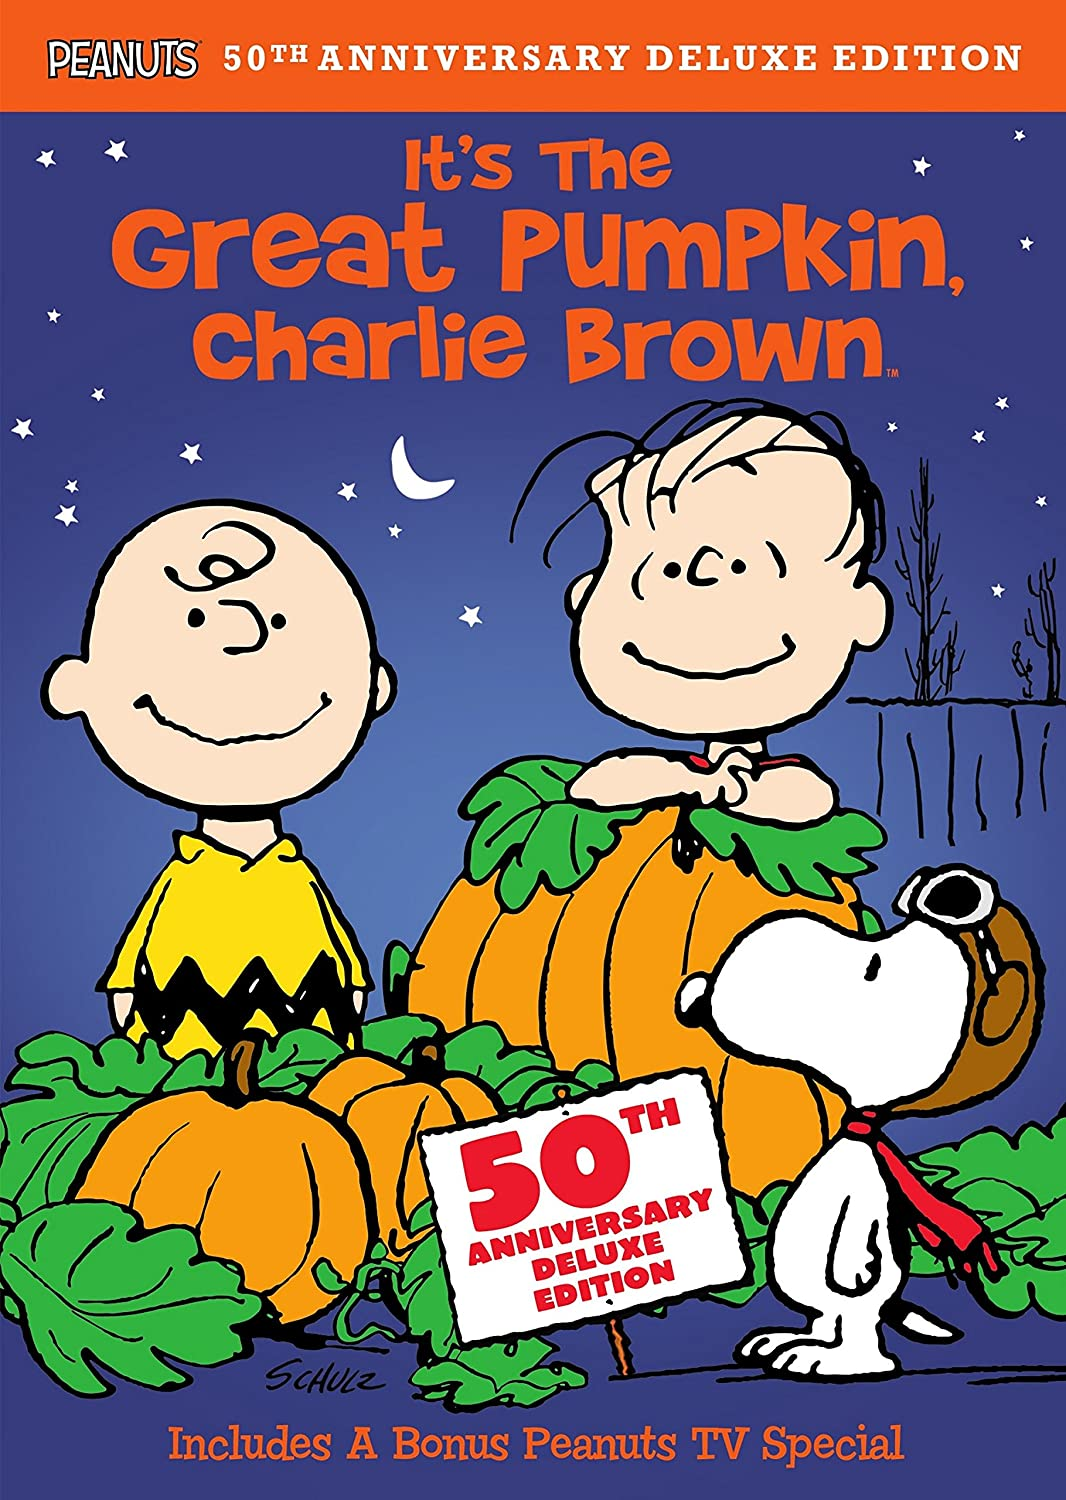 Peanuts: It's the Great Pumpkin, Charlie Brown Various Warner Bros. Home Video 4033803 Cartoons & Animation